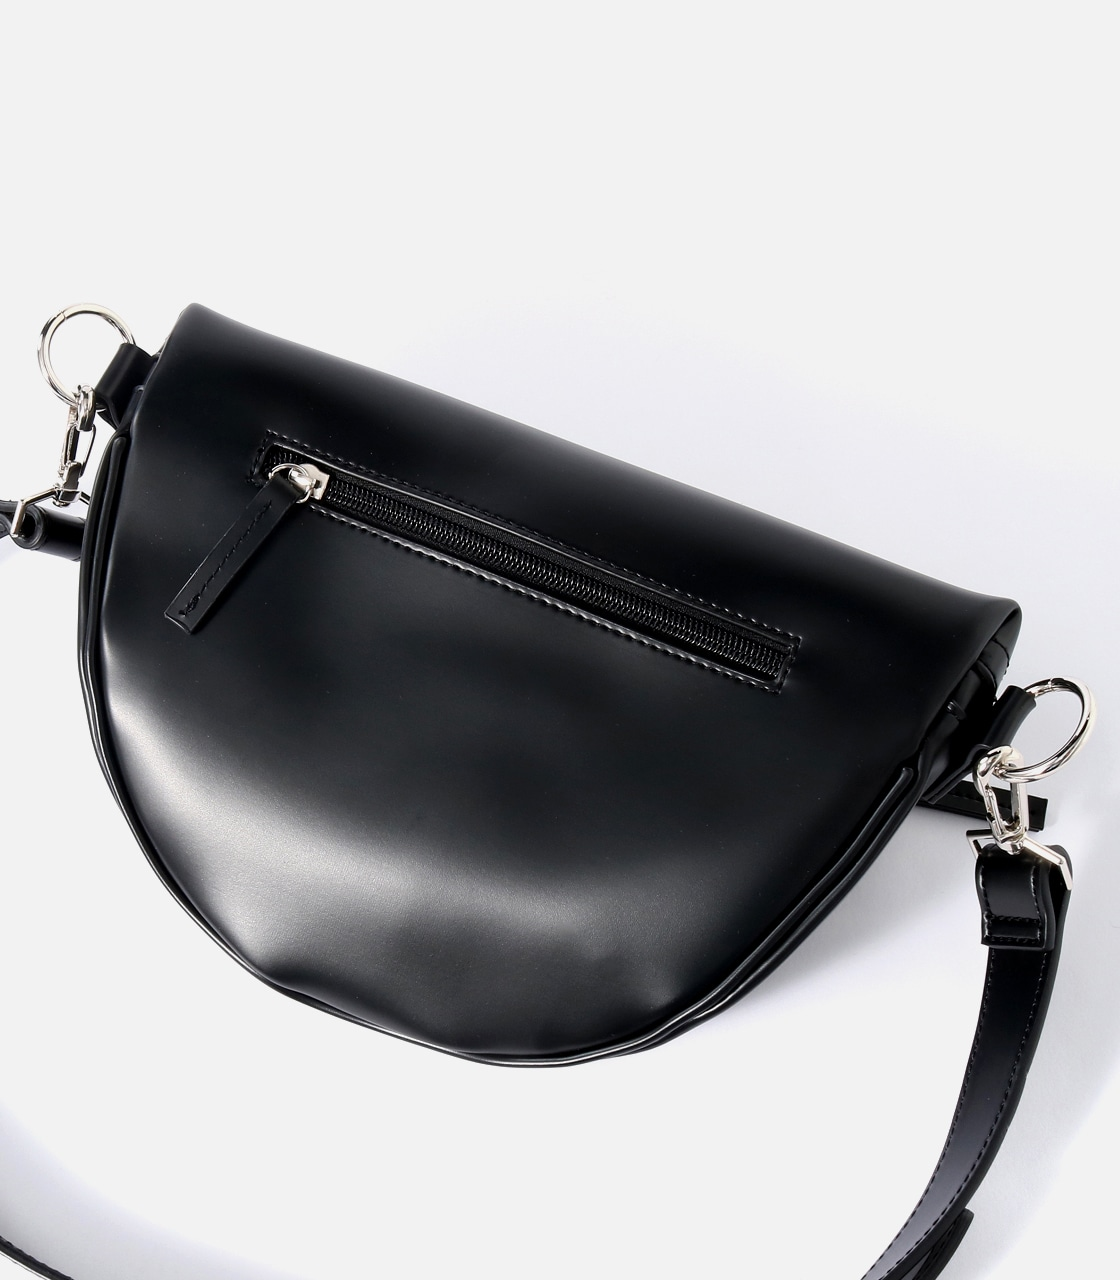 【AZUL BY MOUSSY】FAKE LEATHER WAISTBAG 詳細画像 BLK 6